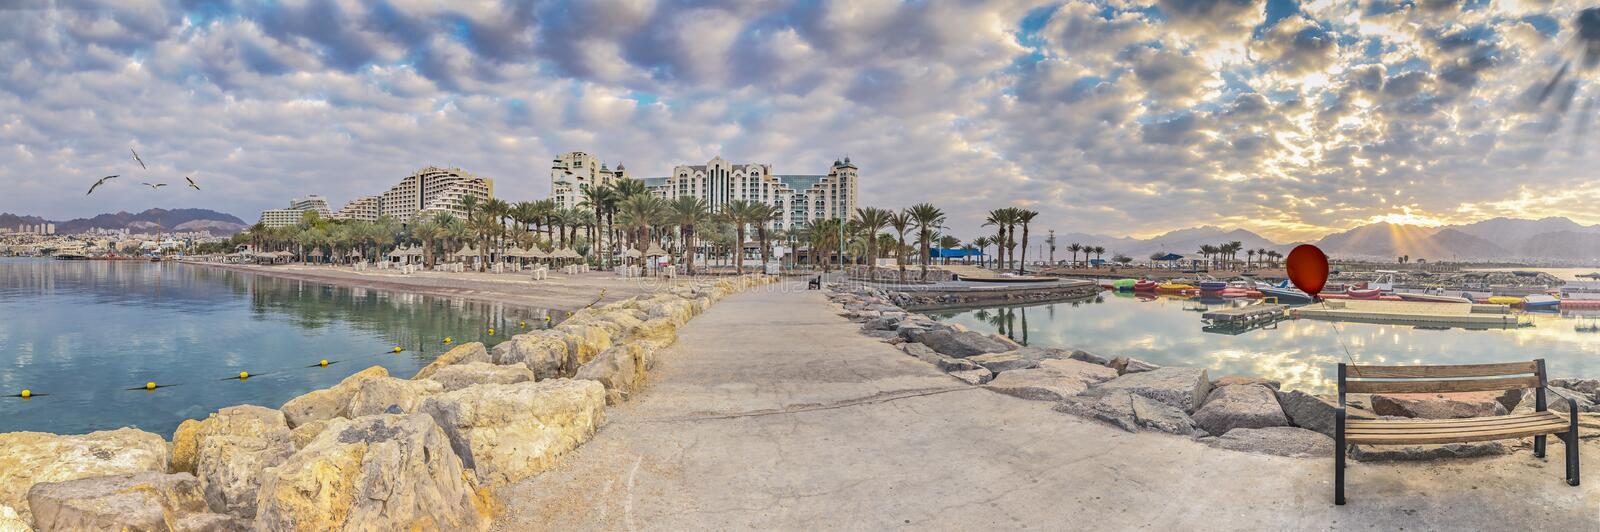 Morning at central public beach in Eilat, panorama. Eilat is a famous tourist resort and recreational city in Israel stock image